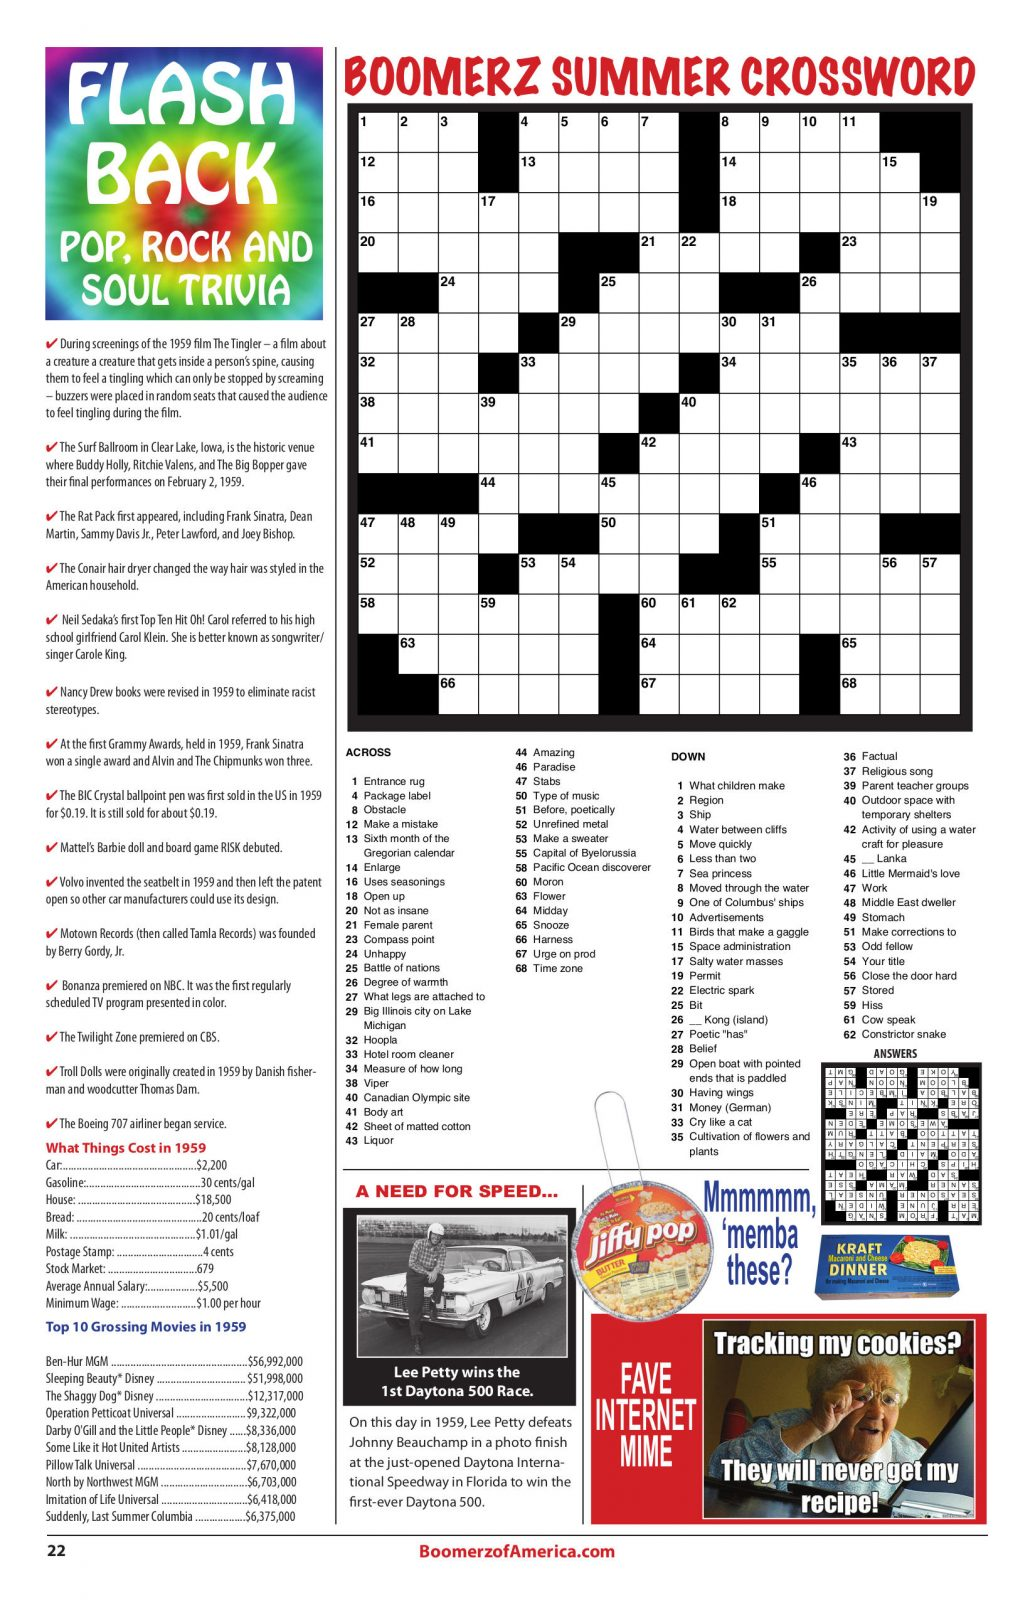 07-July-2019 Boomerz of America 1959 Crossword Puzzel